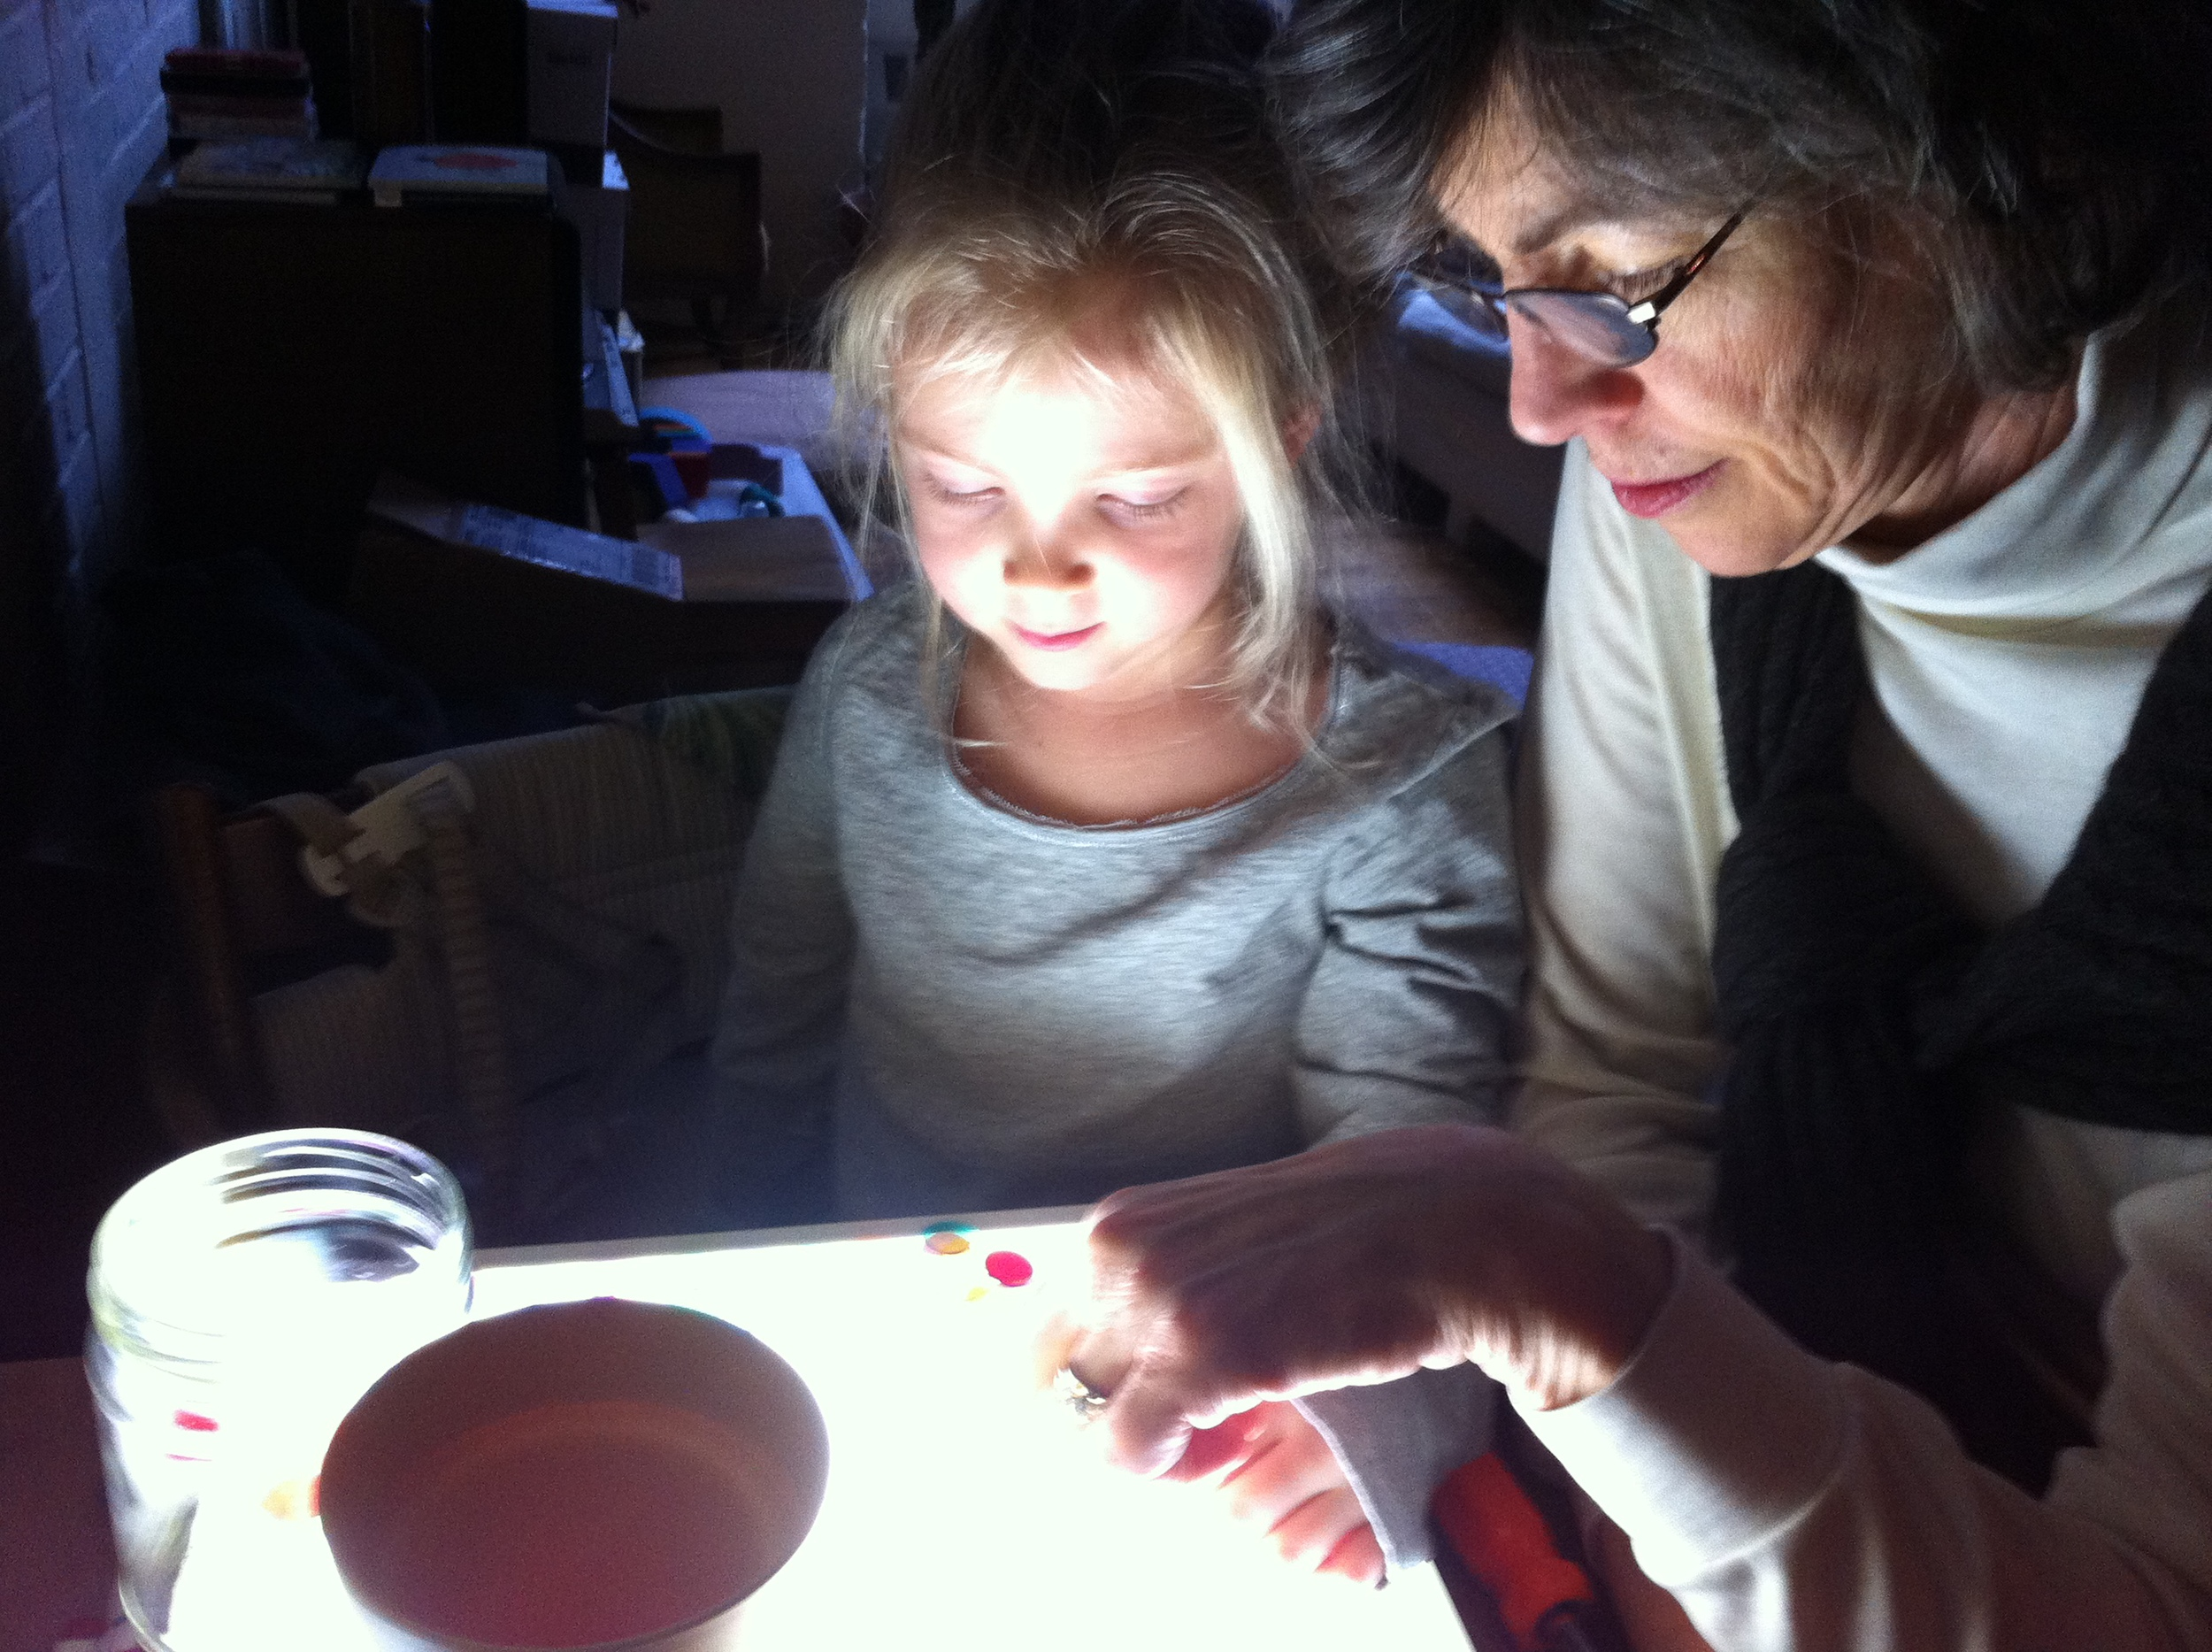 Magnolia and her Tatty prepare for Winter Light. Find & Seek is developing a program which will facilitate young children collaborating with elders on materials exploration and storytelling.